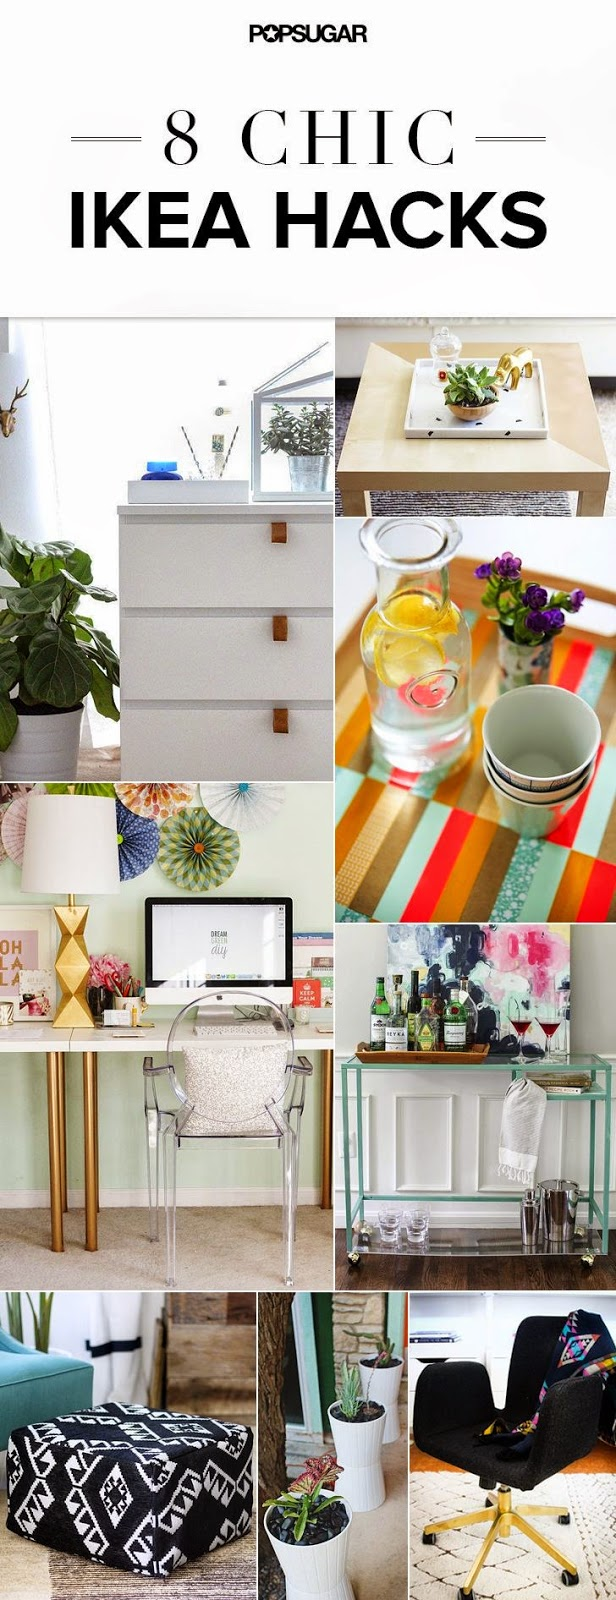 8 Chic IKEA Hacks